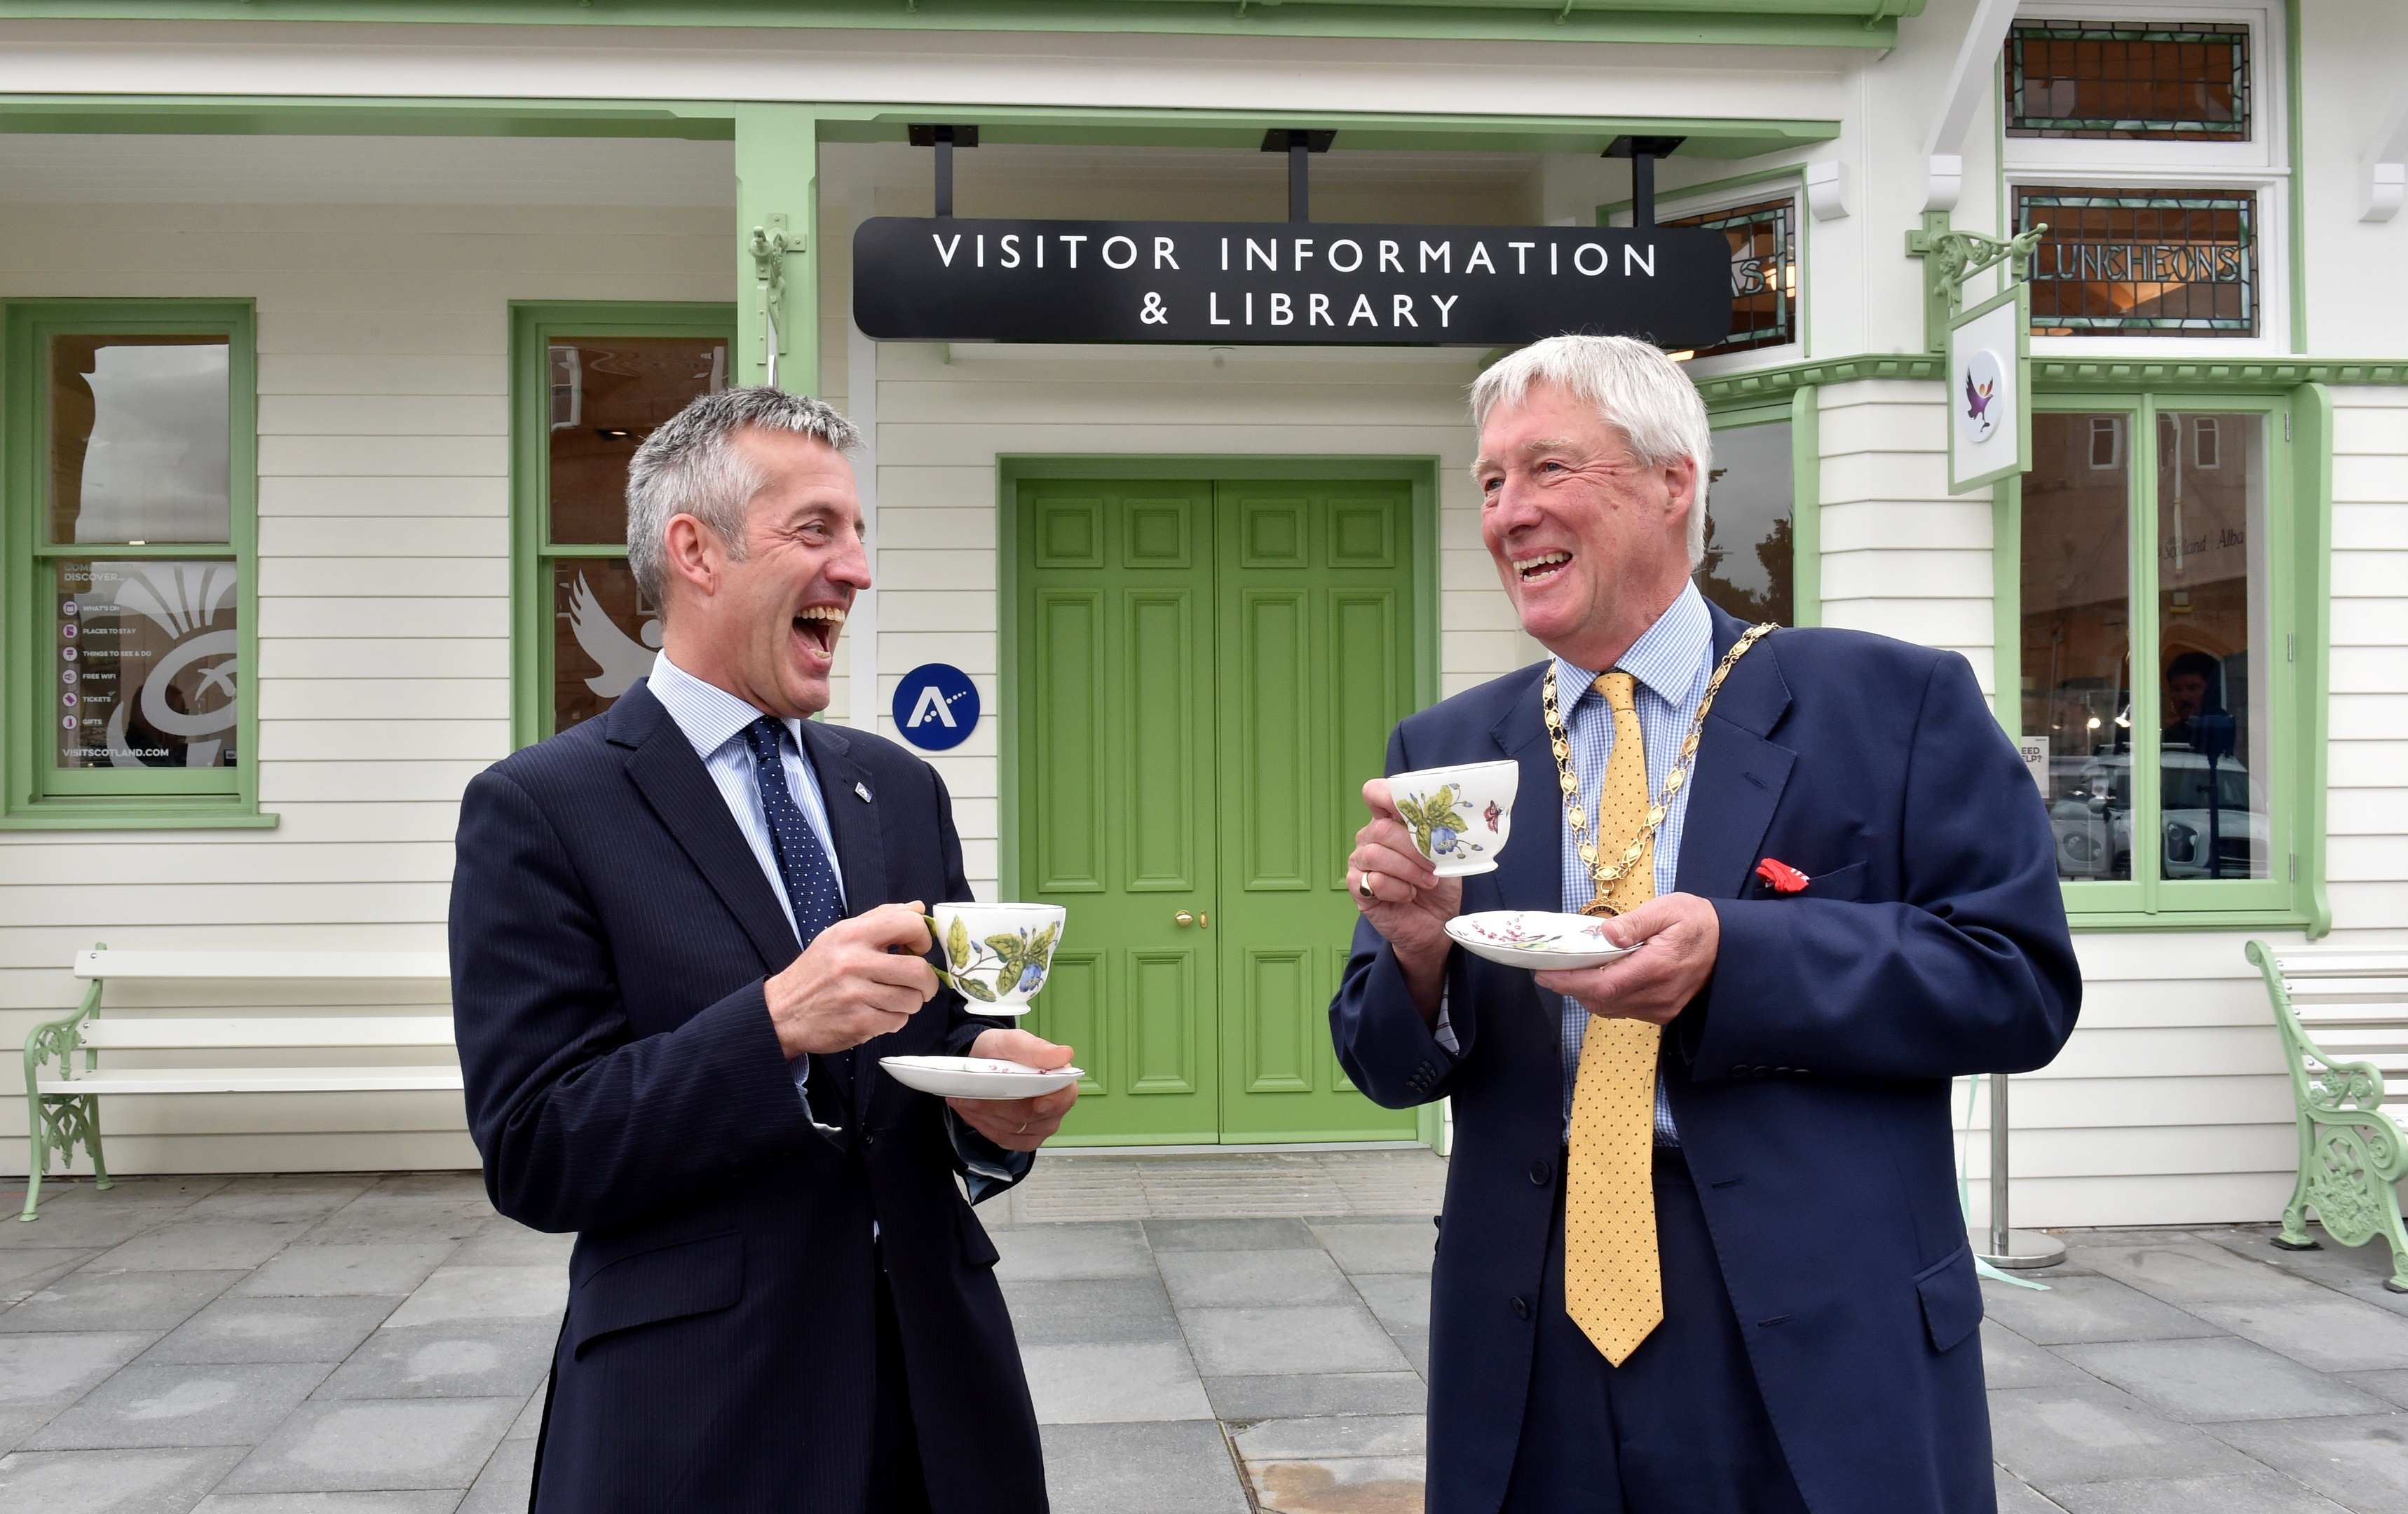 The Aberdeenshire Lord Provost Bill Howatson (right) officially opened the rebuilt Ballater station to the public. He is pictured with Chief Executive Jim Savege. Picture by Colin Rennie.